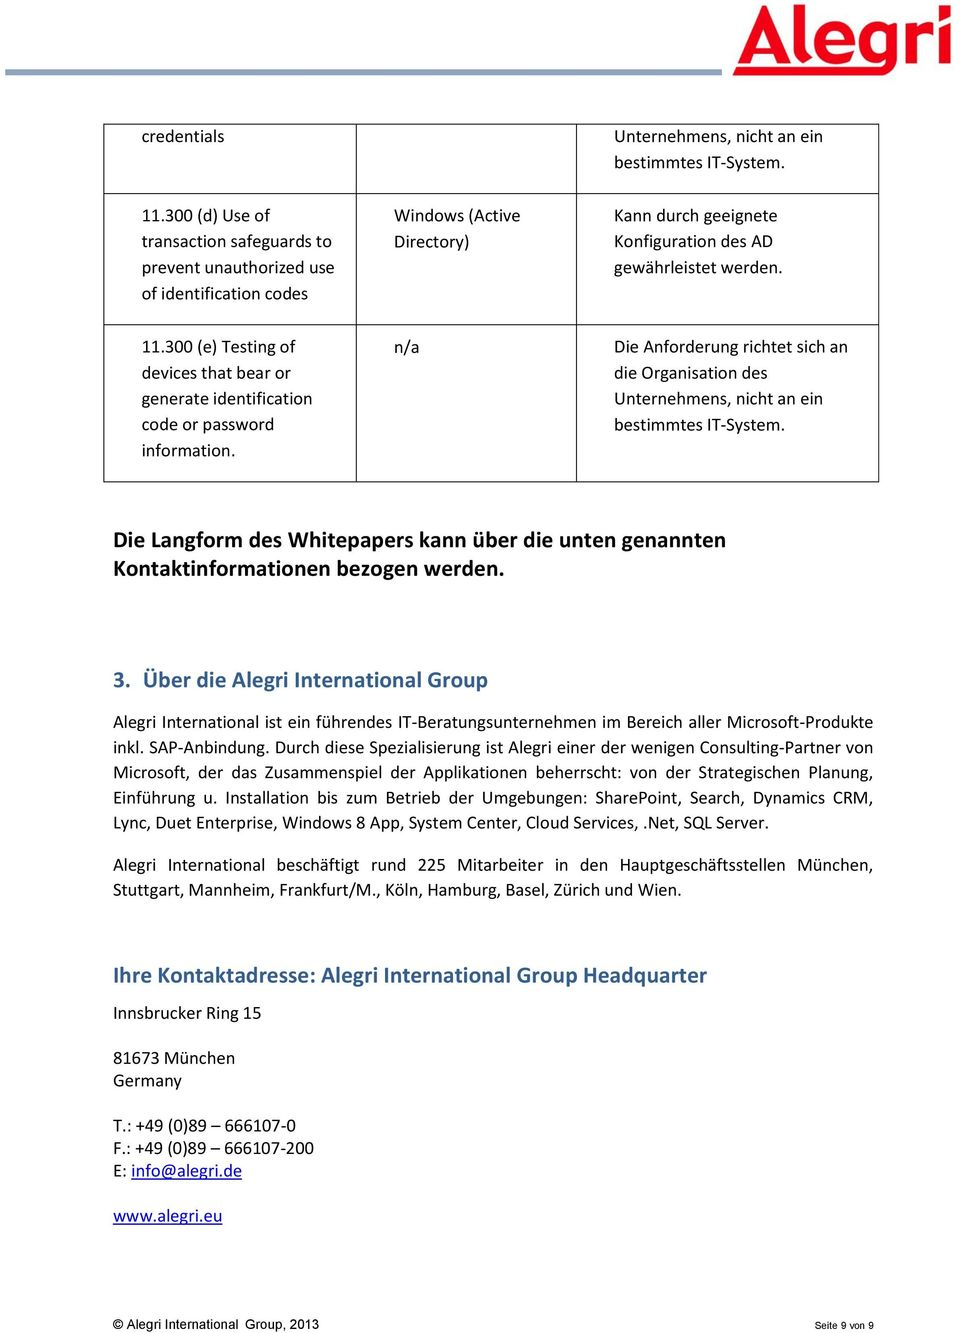 300 (e) Testing of devices that bear or generate identification code or password information. n/a Die Anforderung richtet sich an die Organisation des Unternehmens, nicht an ein bestimmtes IT-System.